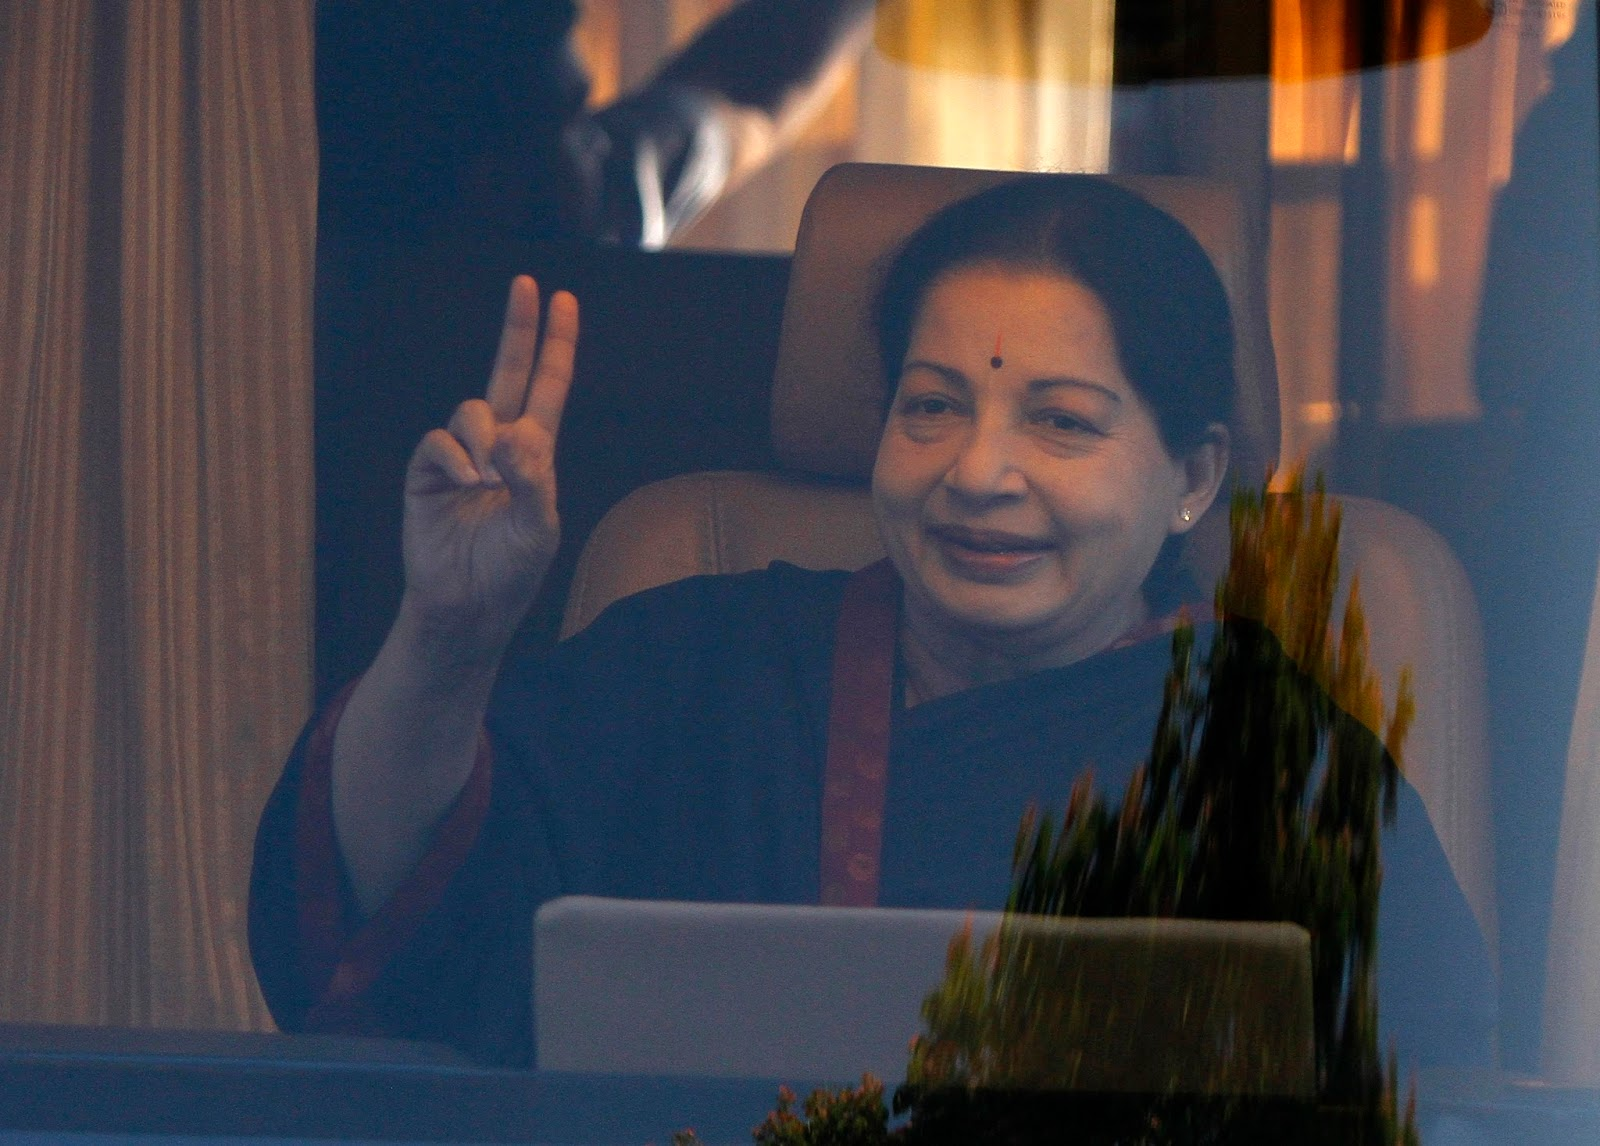 Thousands mourn beloved leader Jayalalithaa in south India